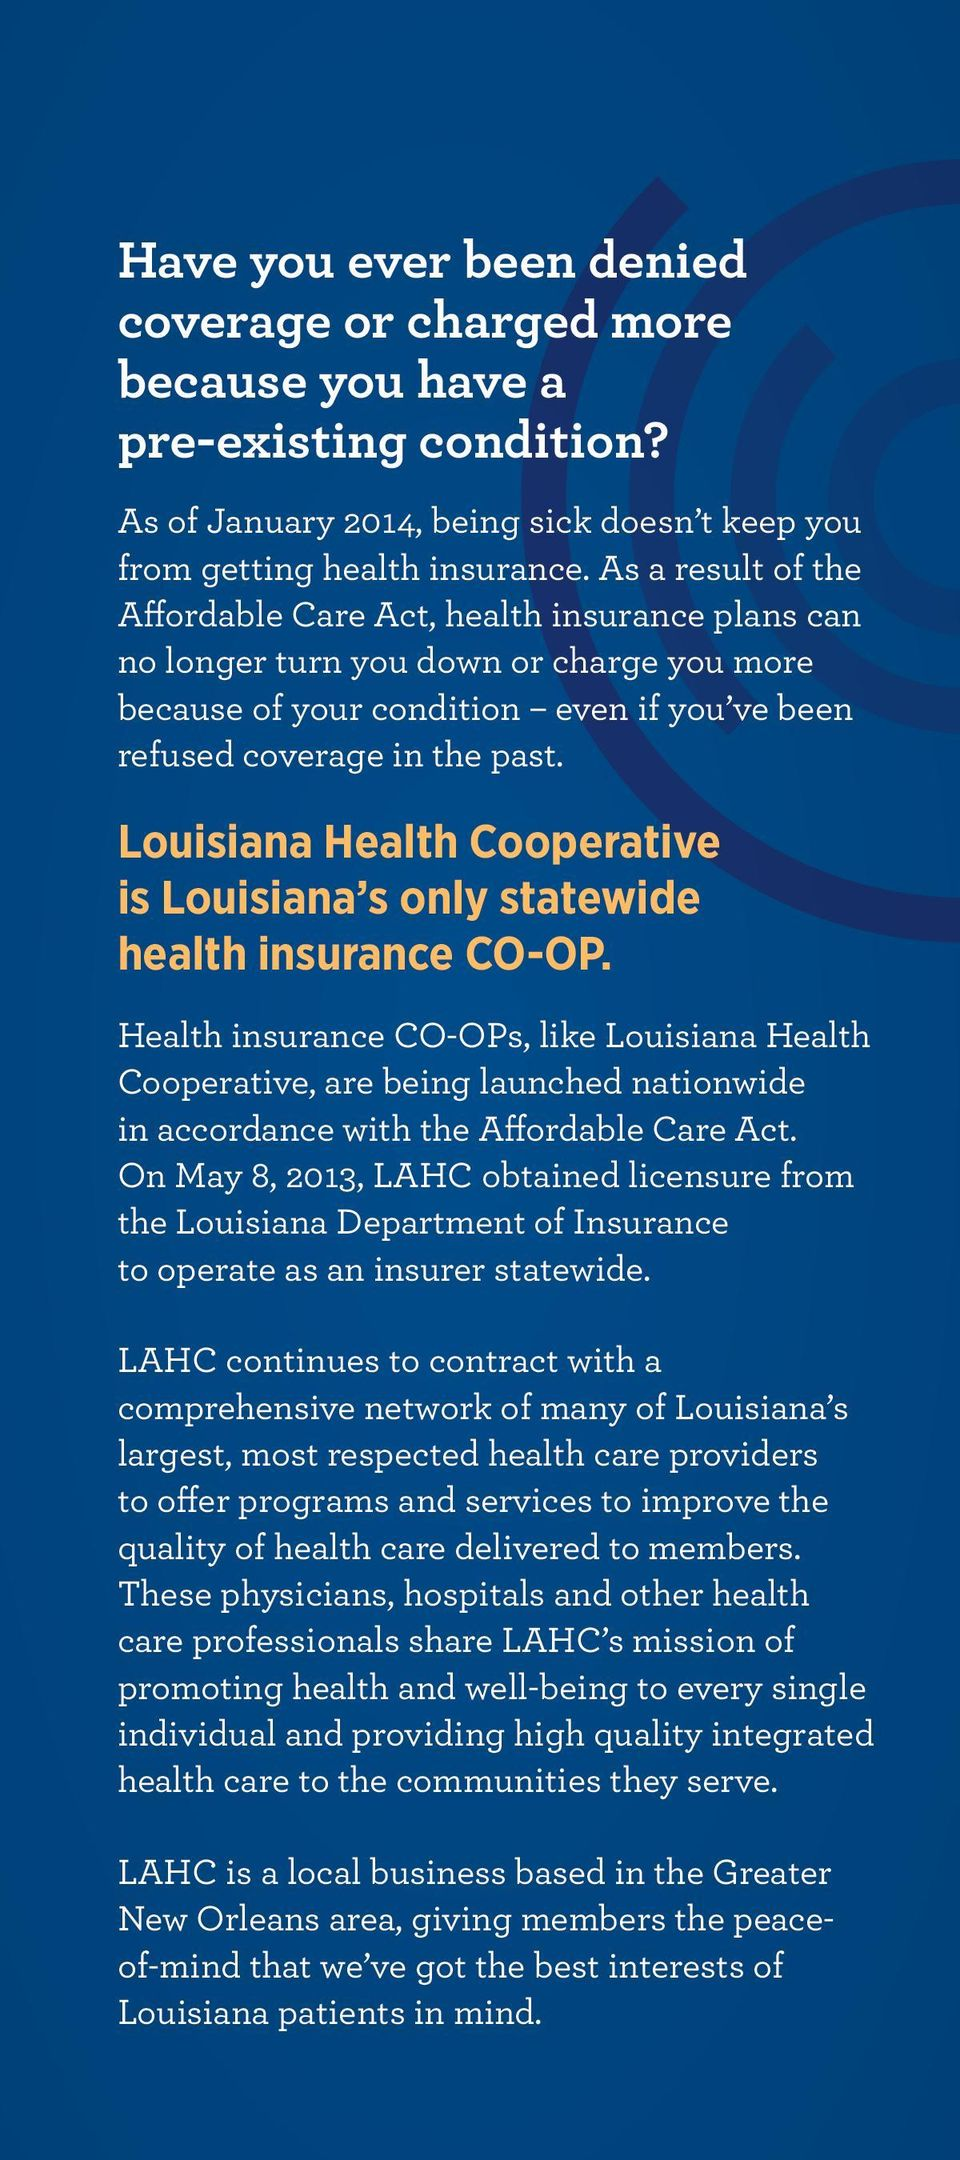 Louisiana Health Cooperative is Louisiana s only statewide health insurance CO-OP.